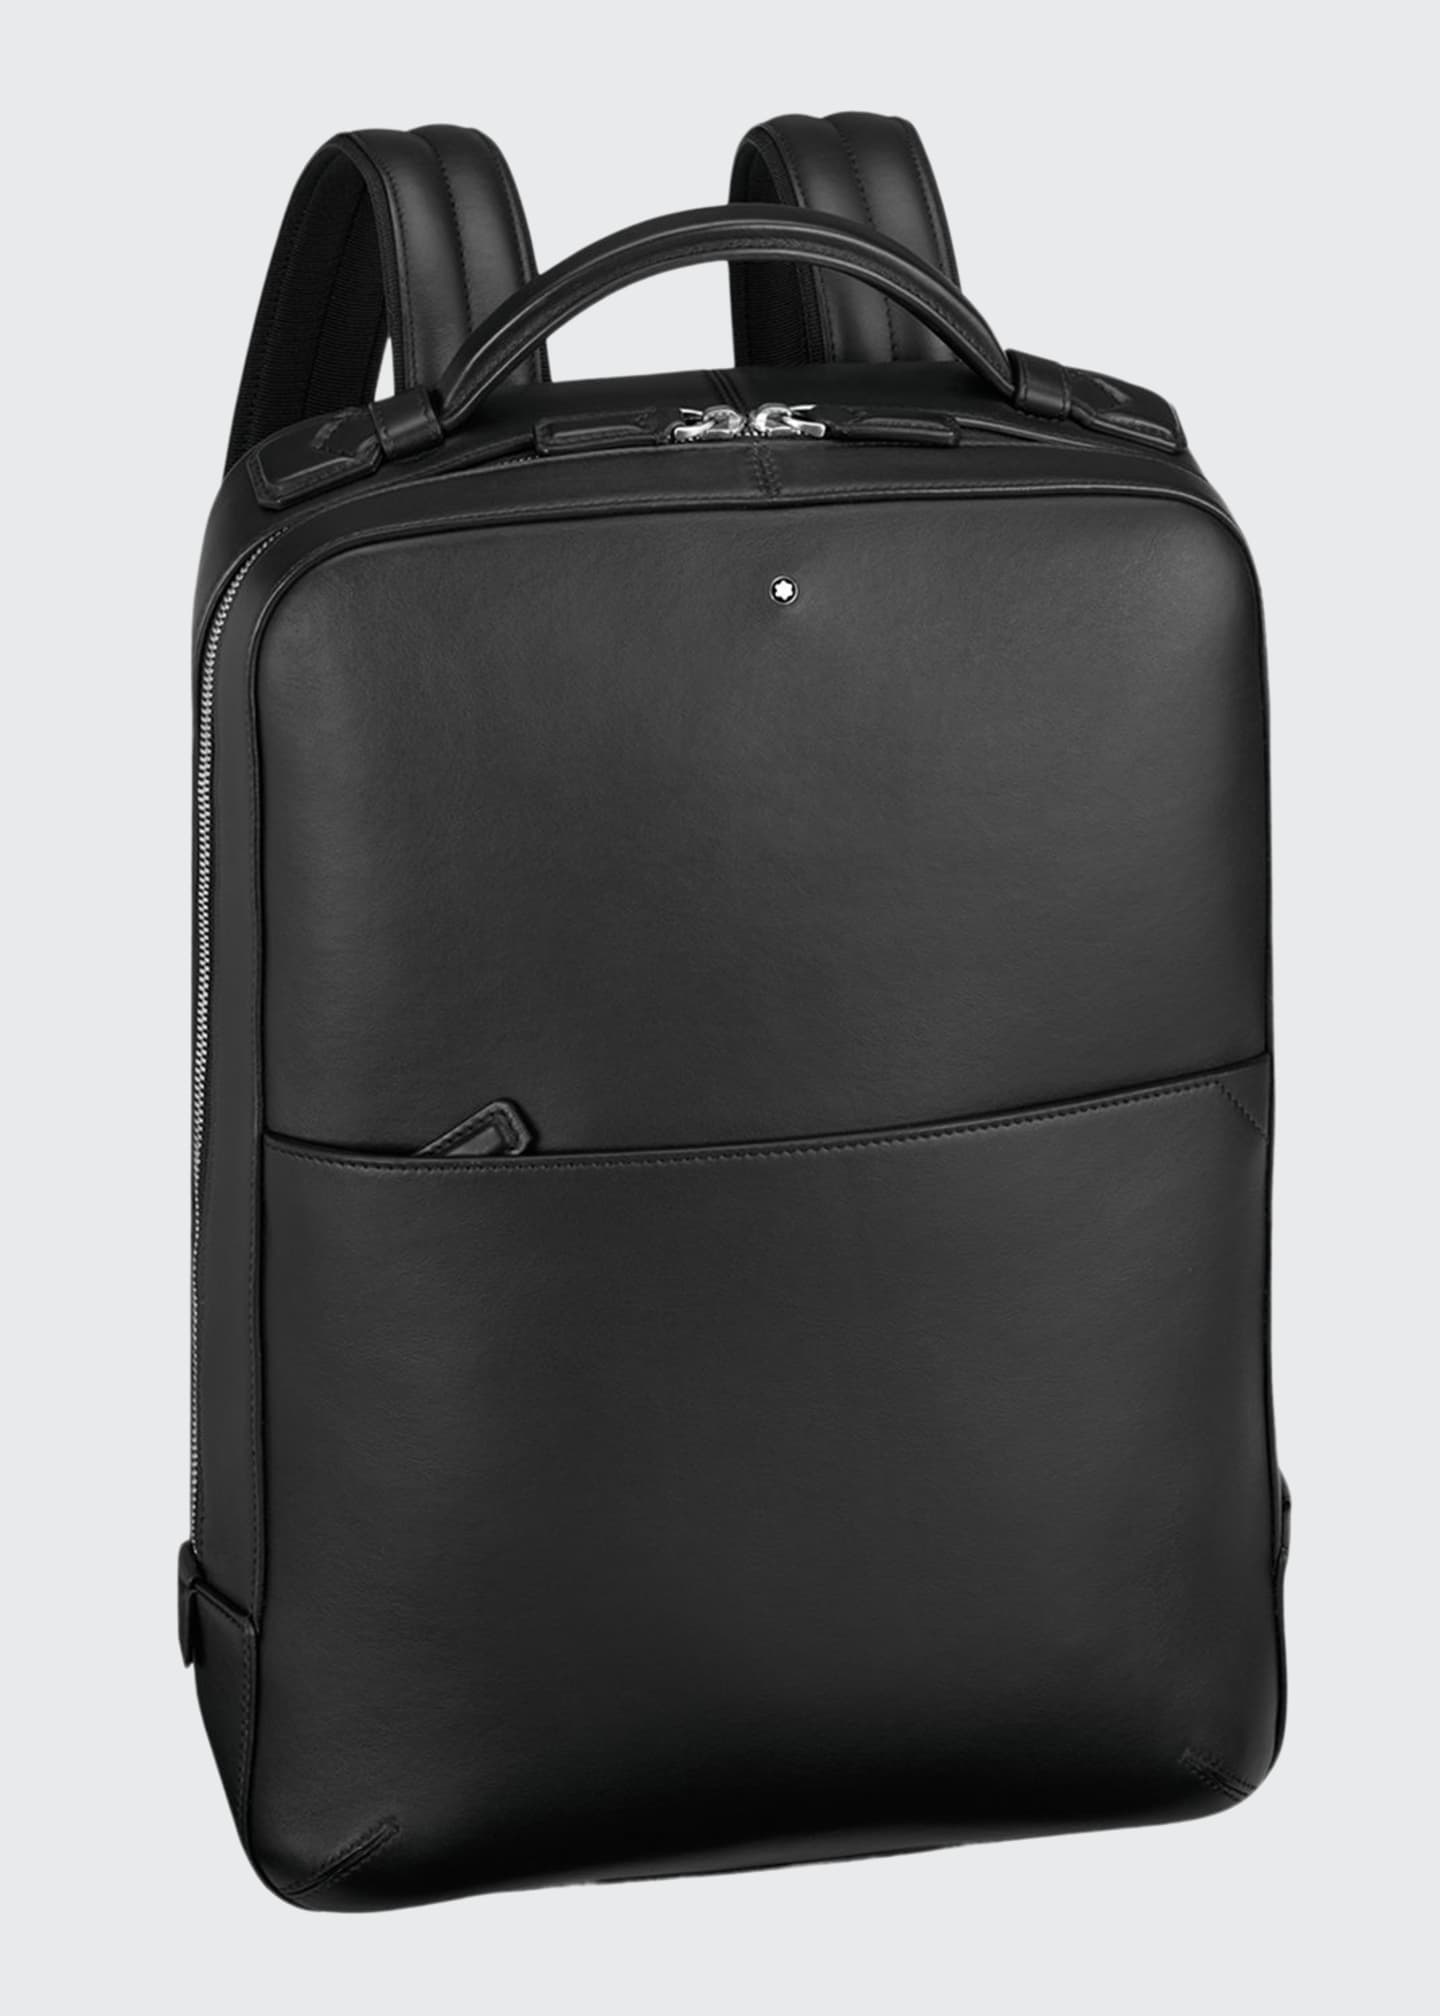 Montblanc Men's Meisterstuck Urban Slim Leather Backpack